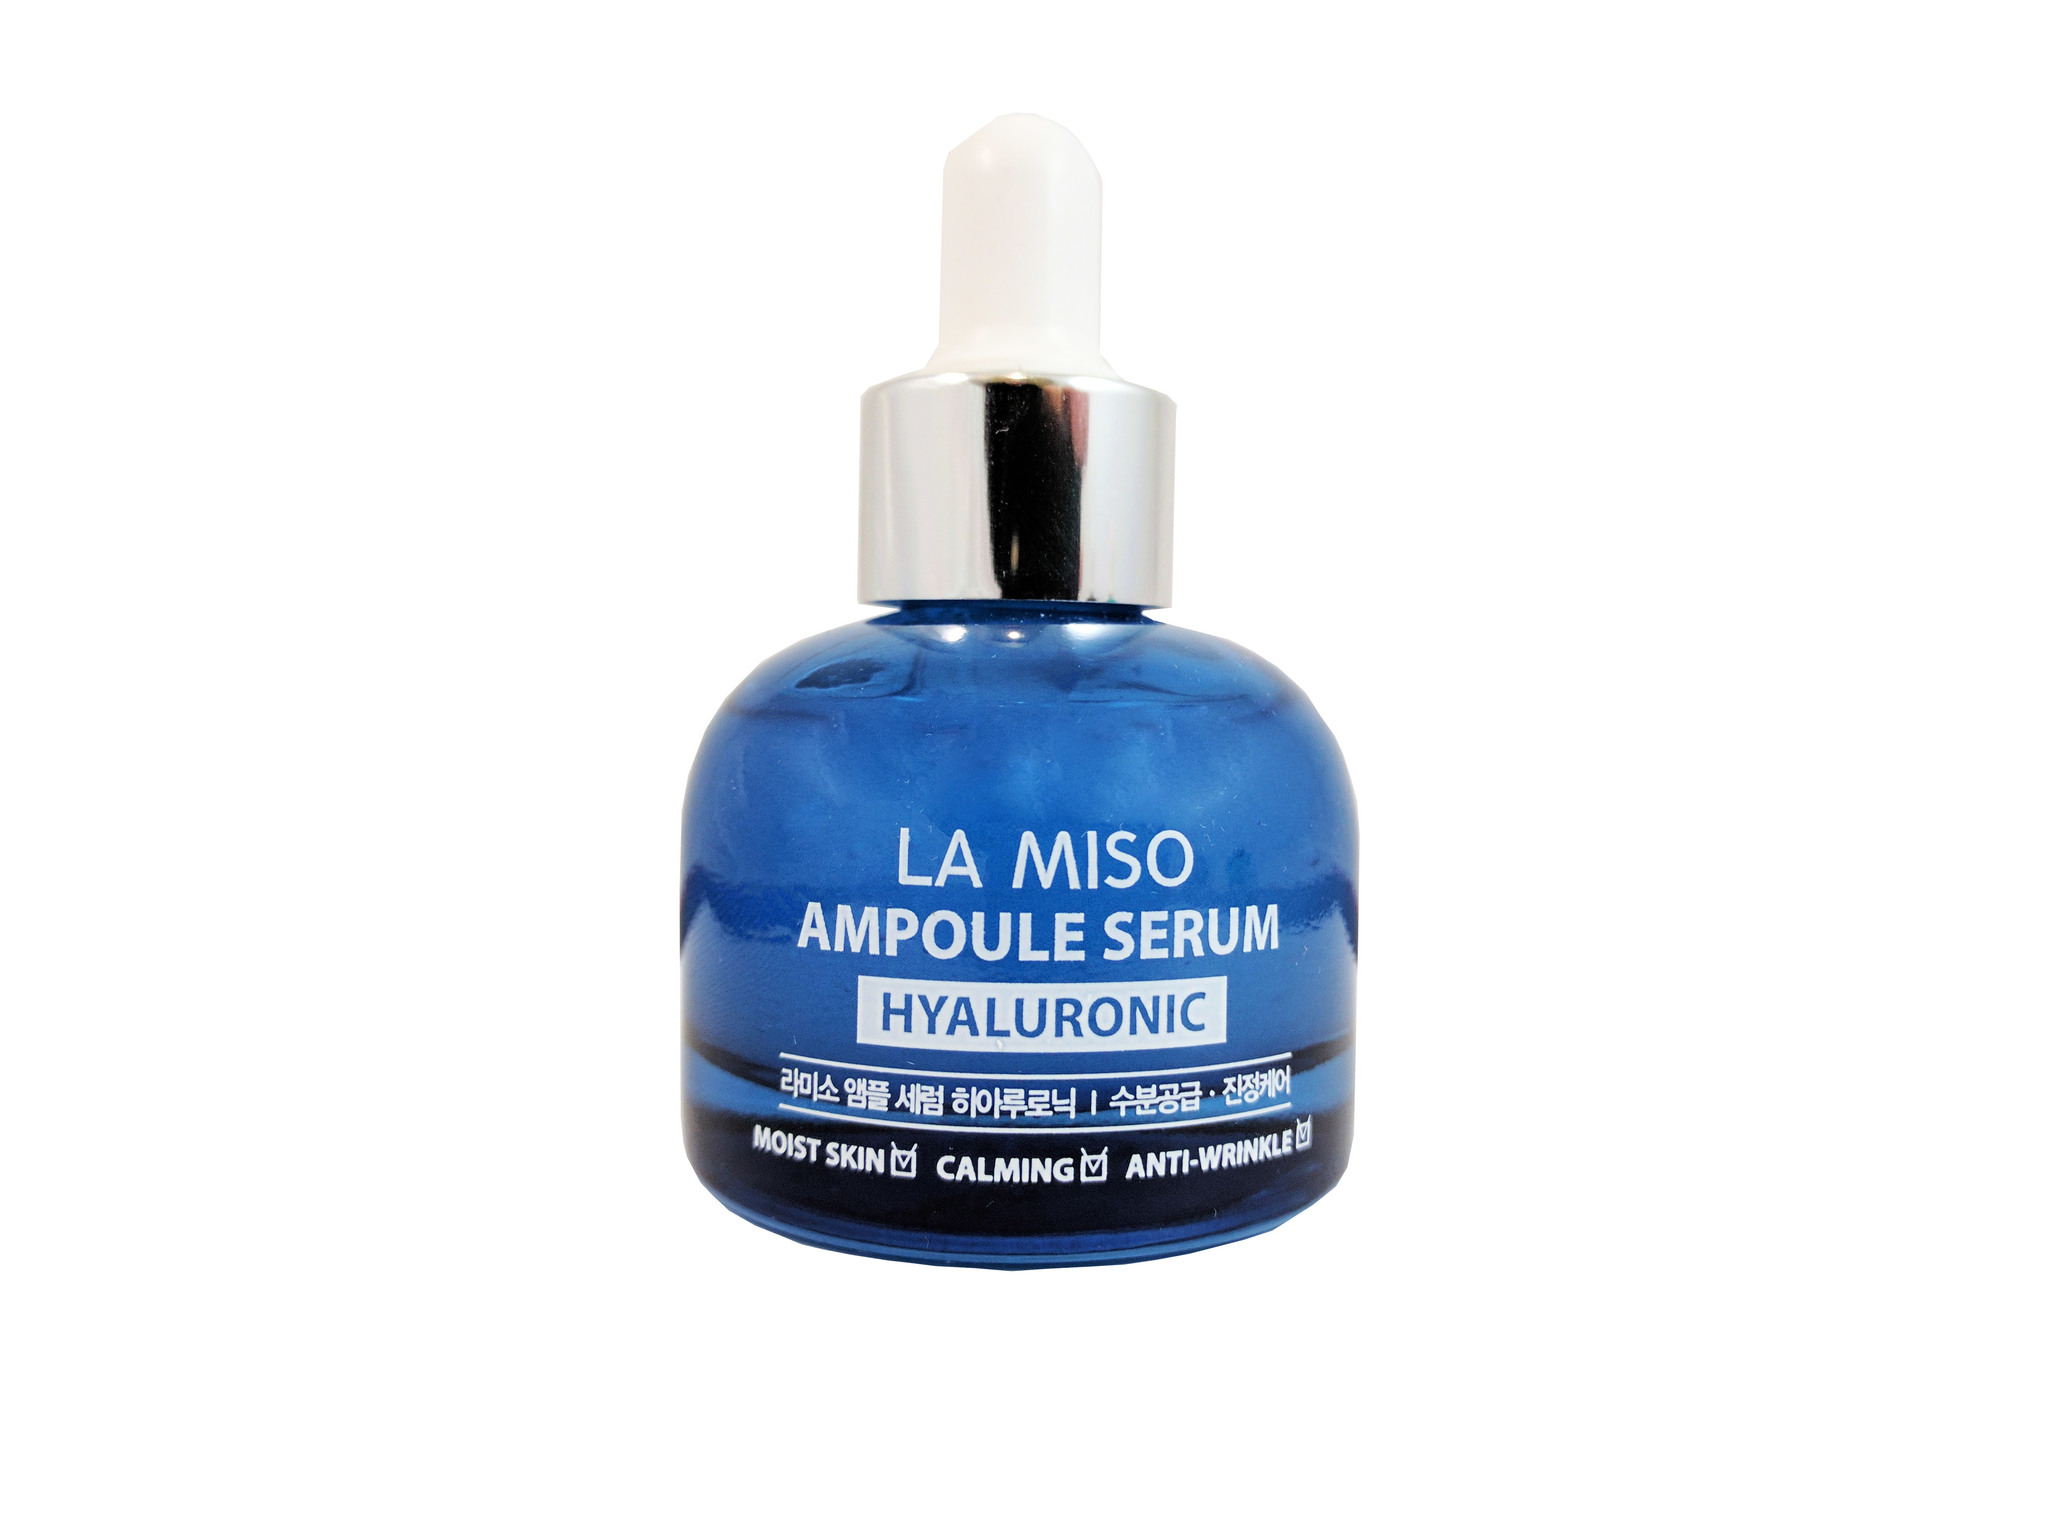 Восстанавливающая сыворотка для лица Ampoule Serum Hyaluronic от La Miso